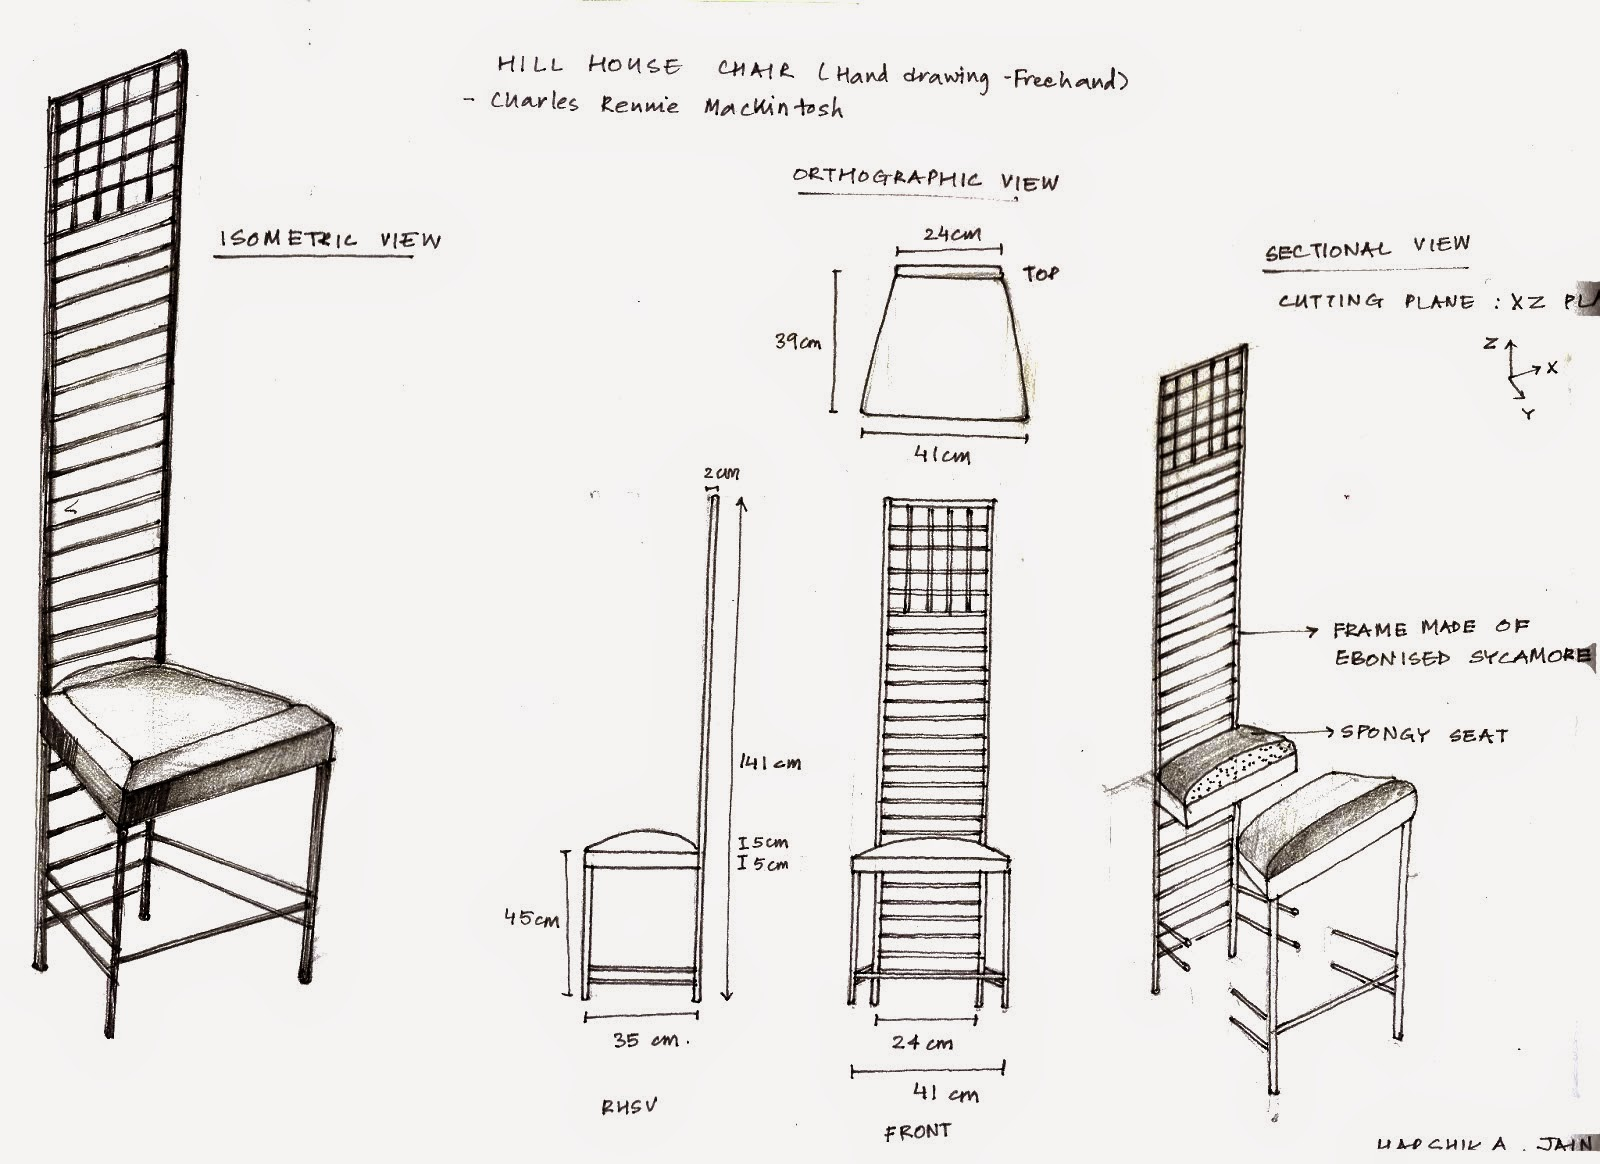 Free Home Blueprints Crypt Decrypt Hill House Chair Sketch Orthographic